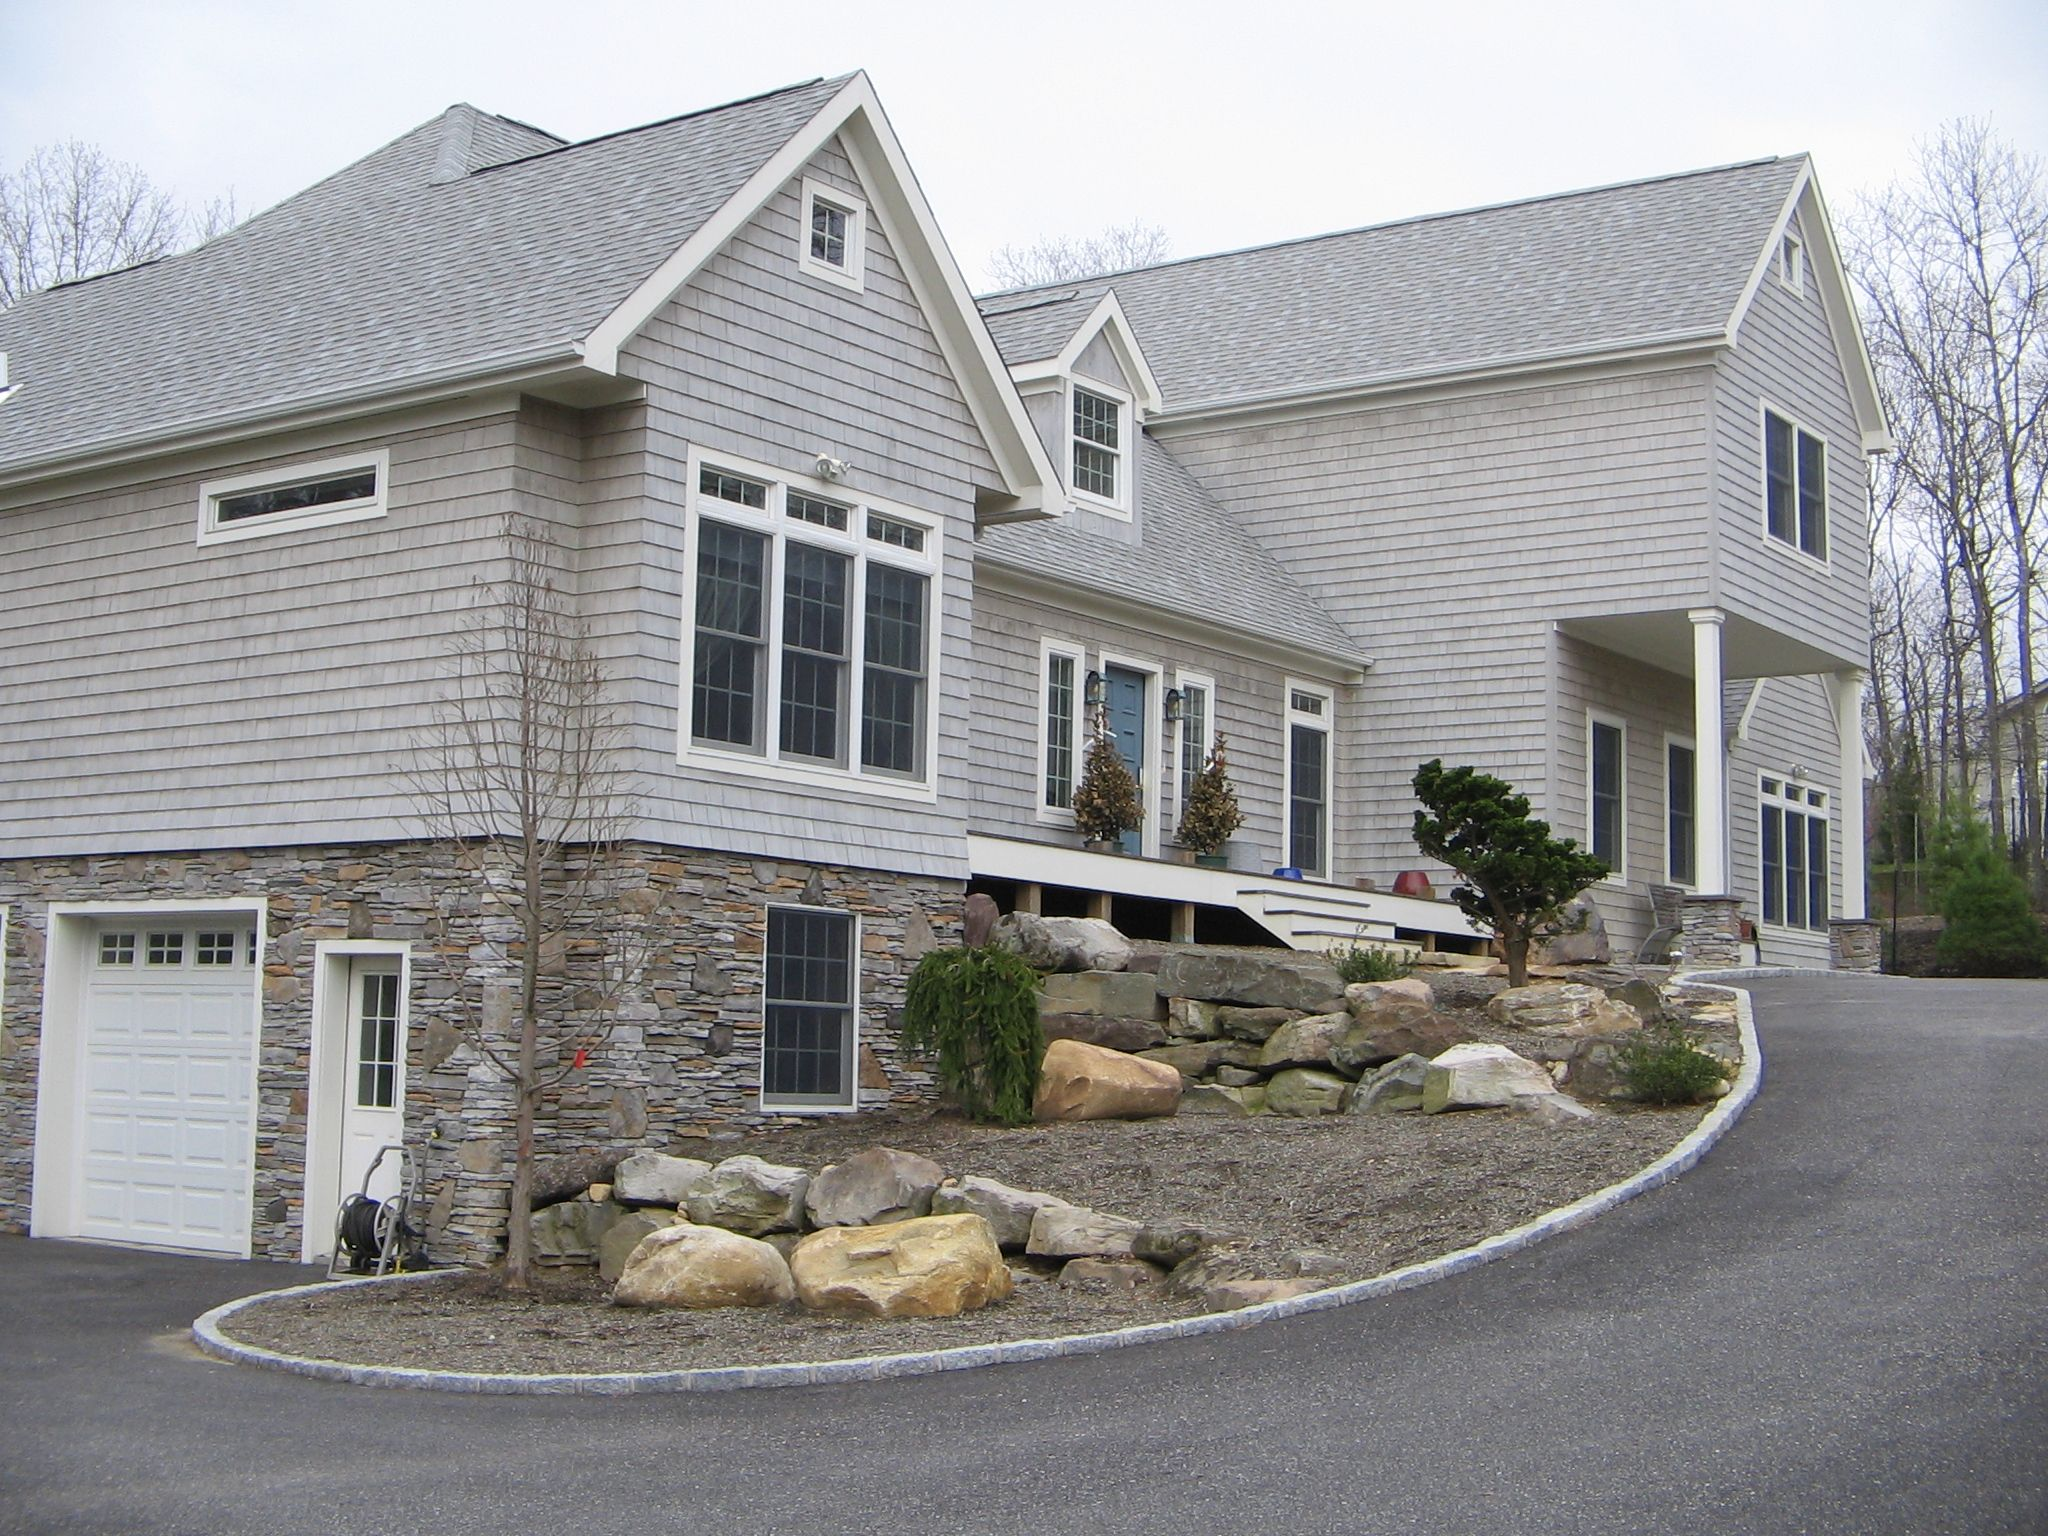 Cool custom modular two story home with drive under garage